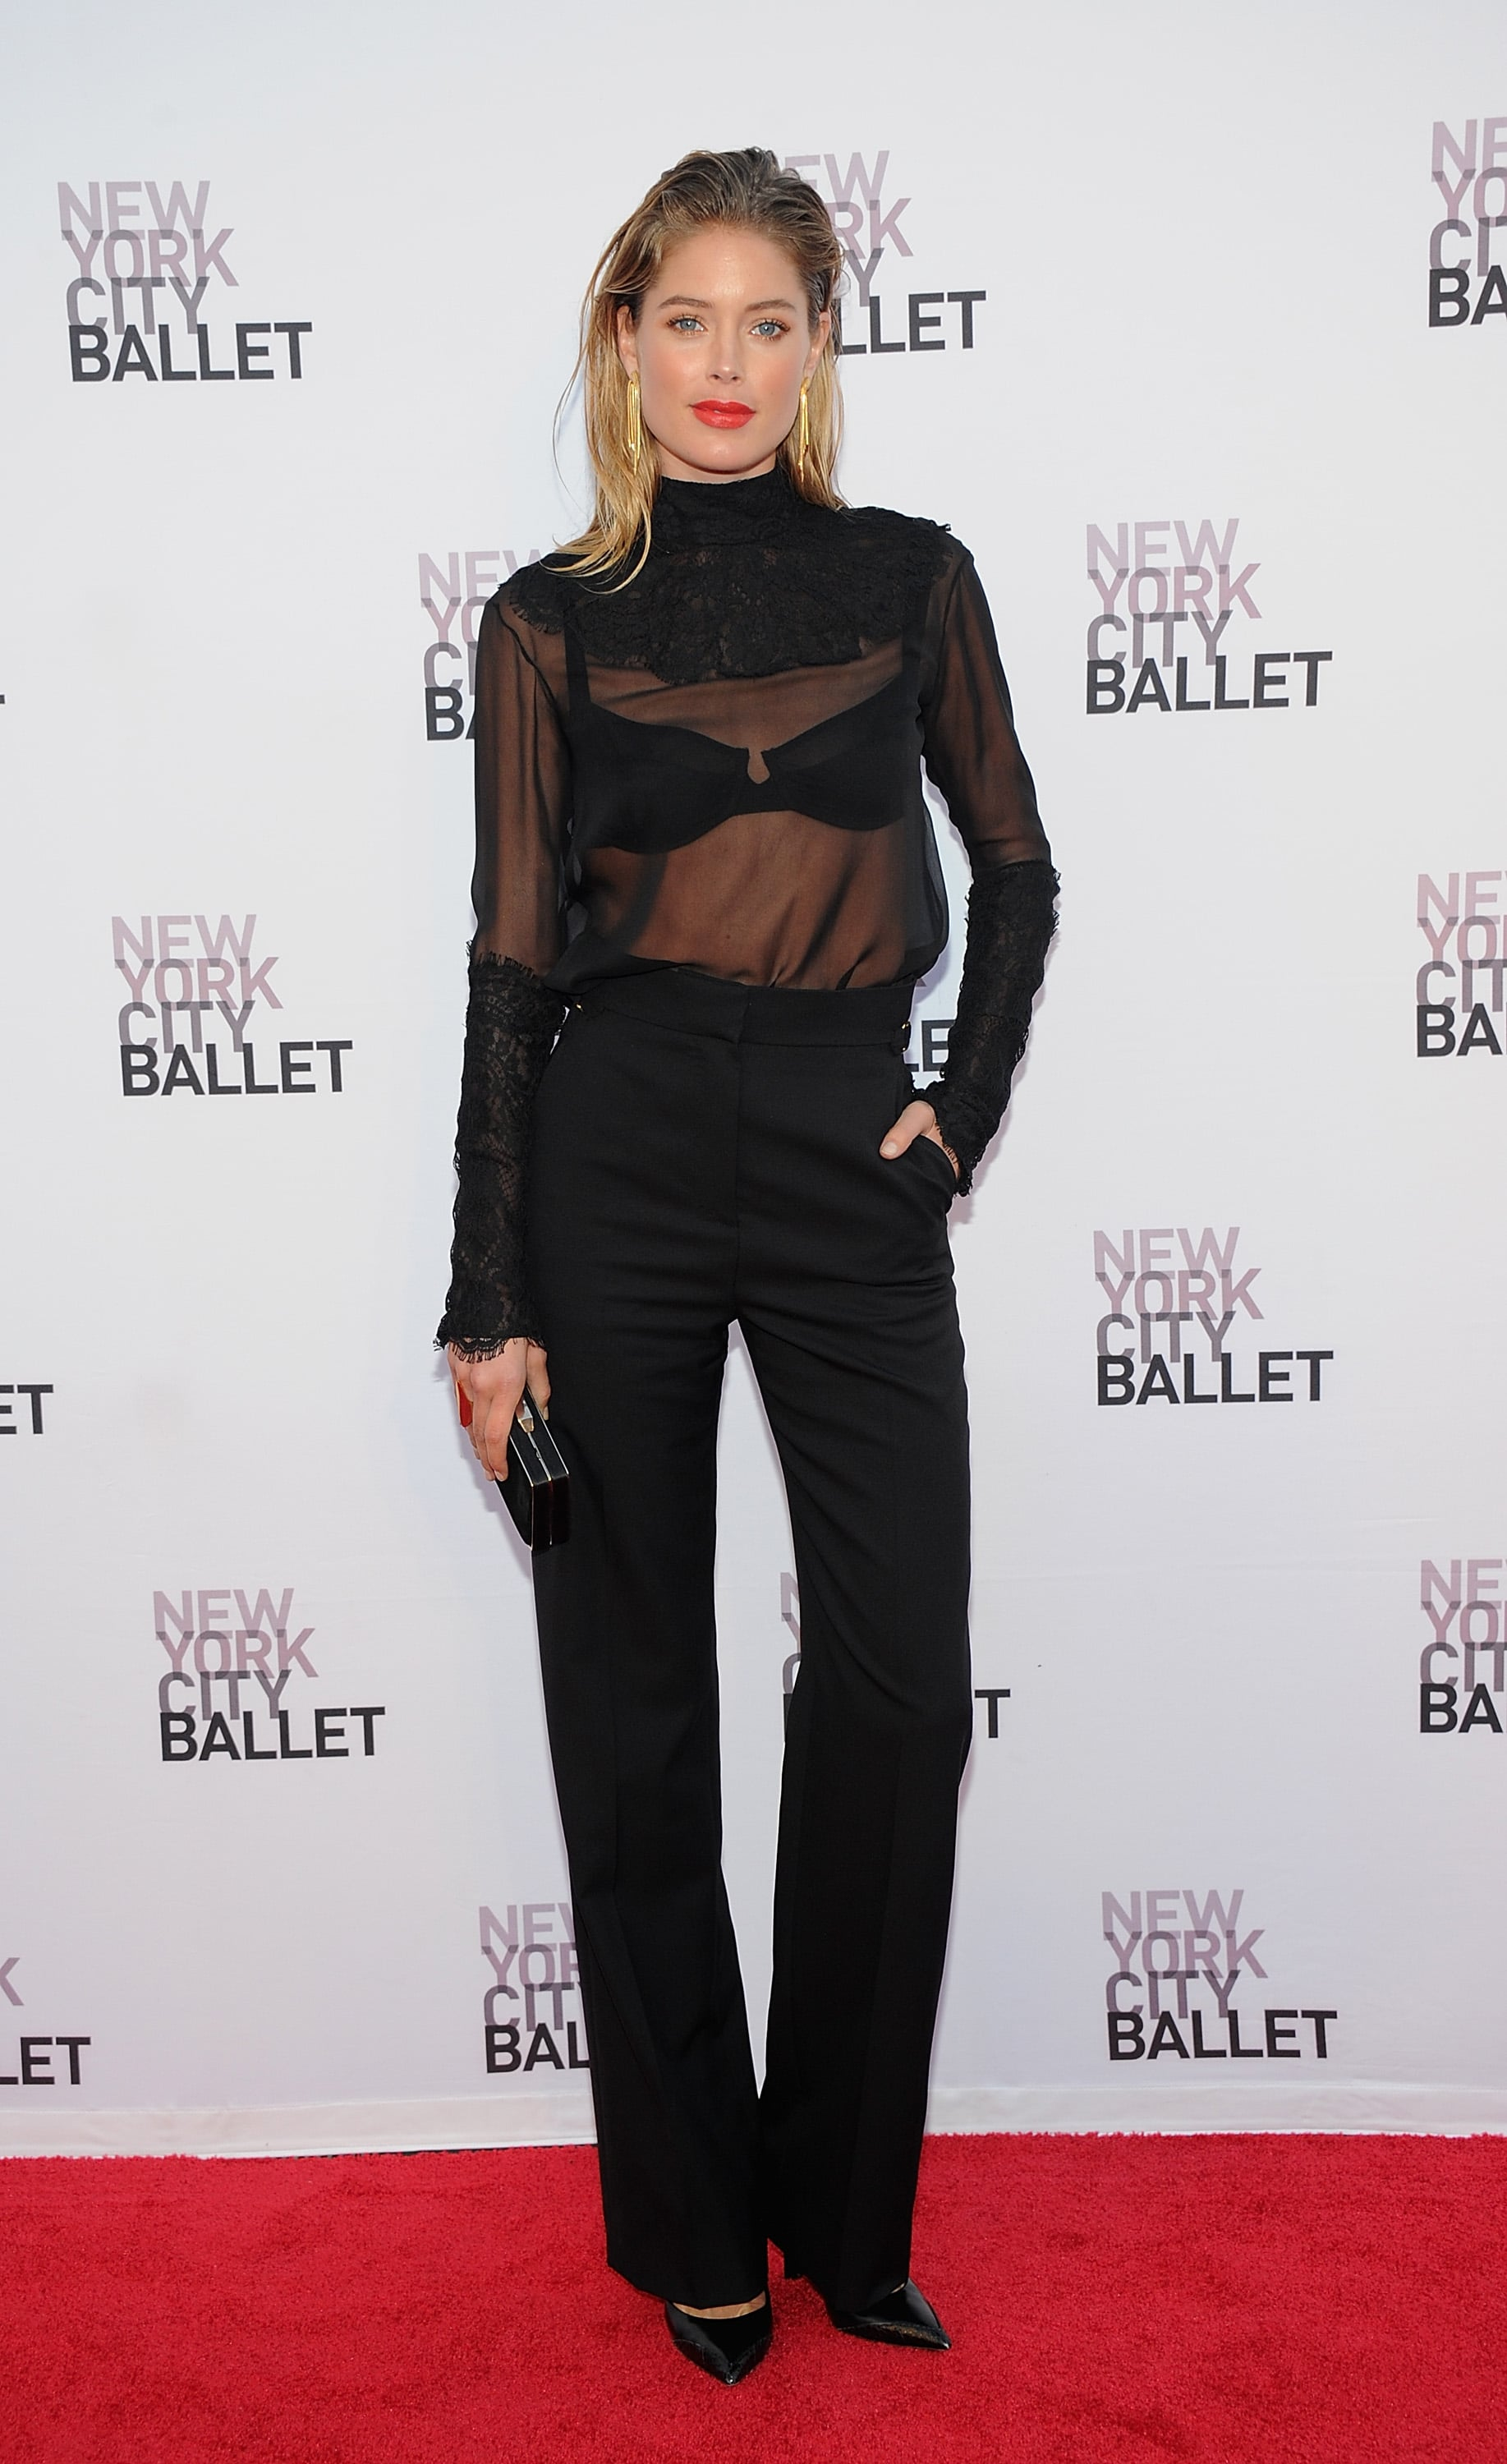 Doutzen Kroes was sheer perfection in her peekaboo black ensemble at the New York City Ballet gala.